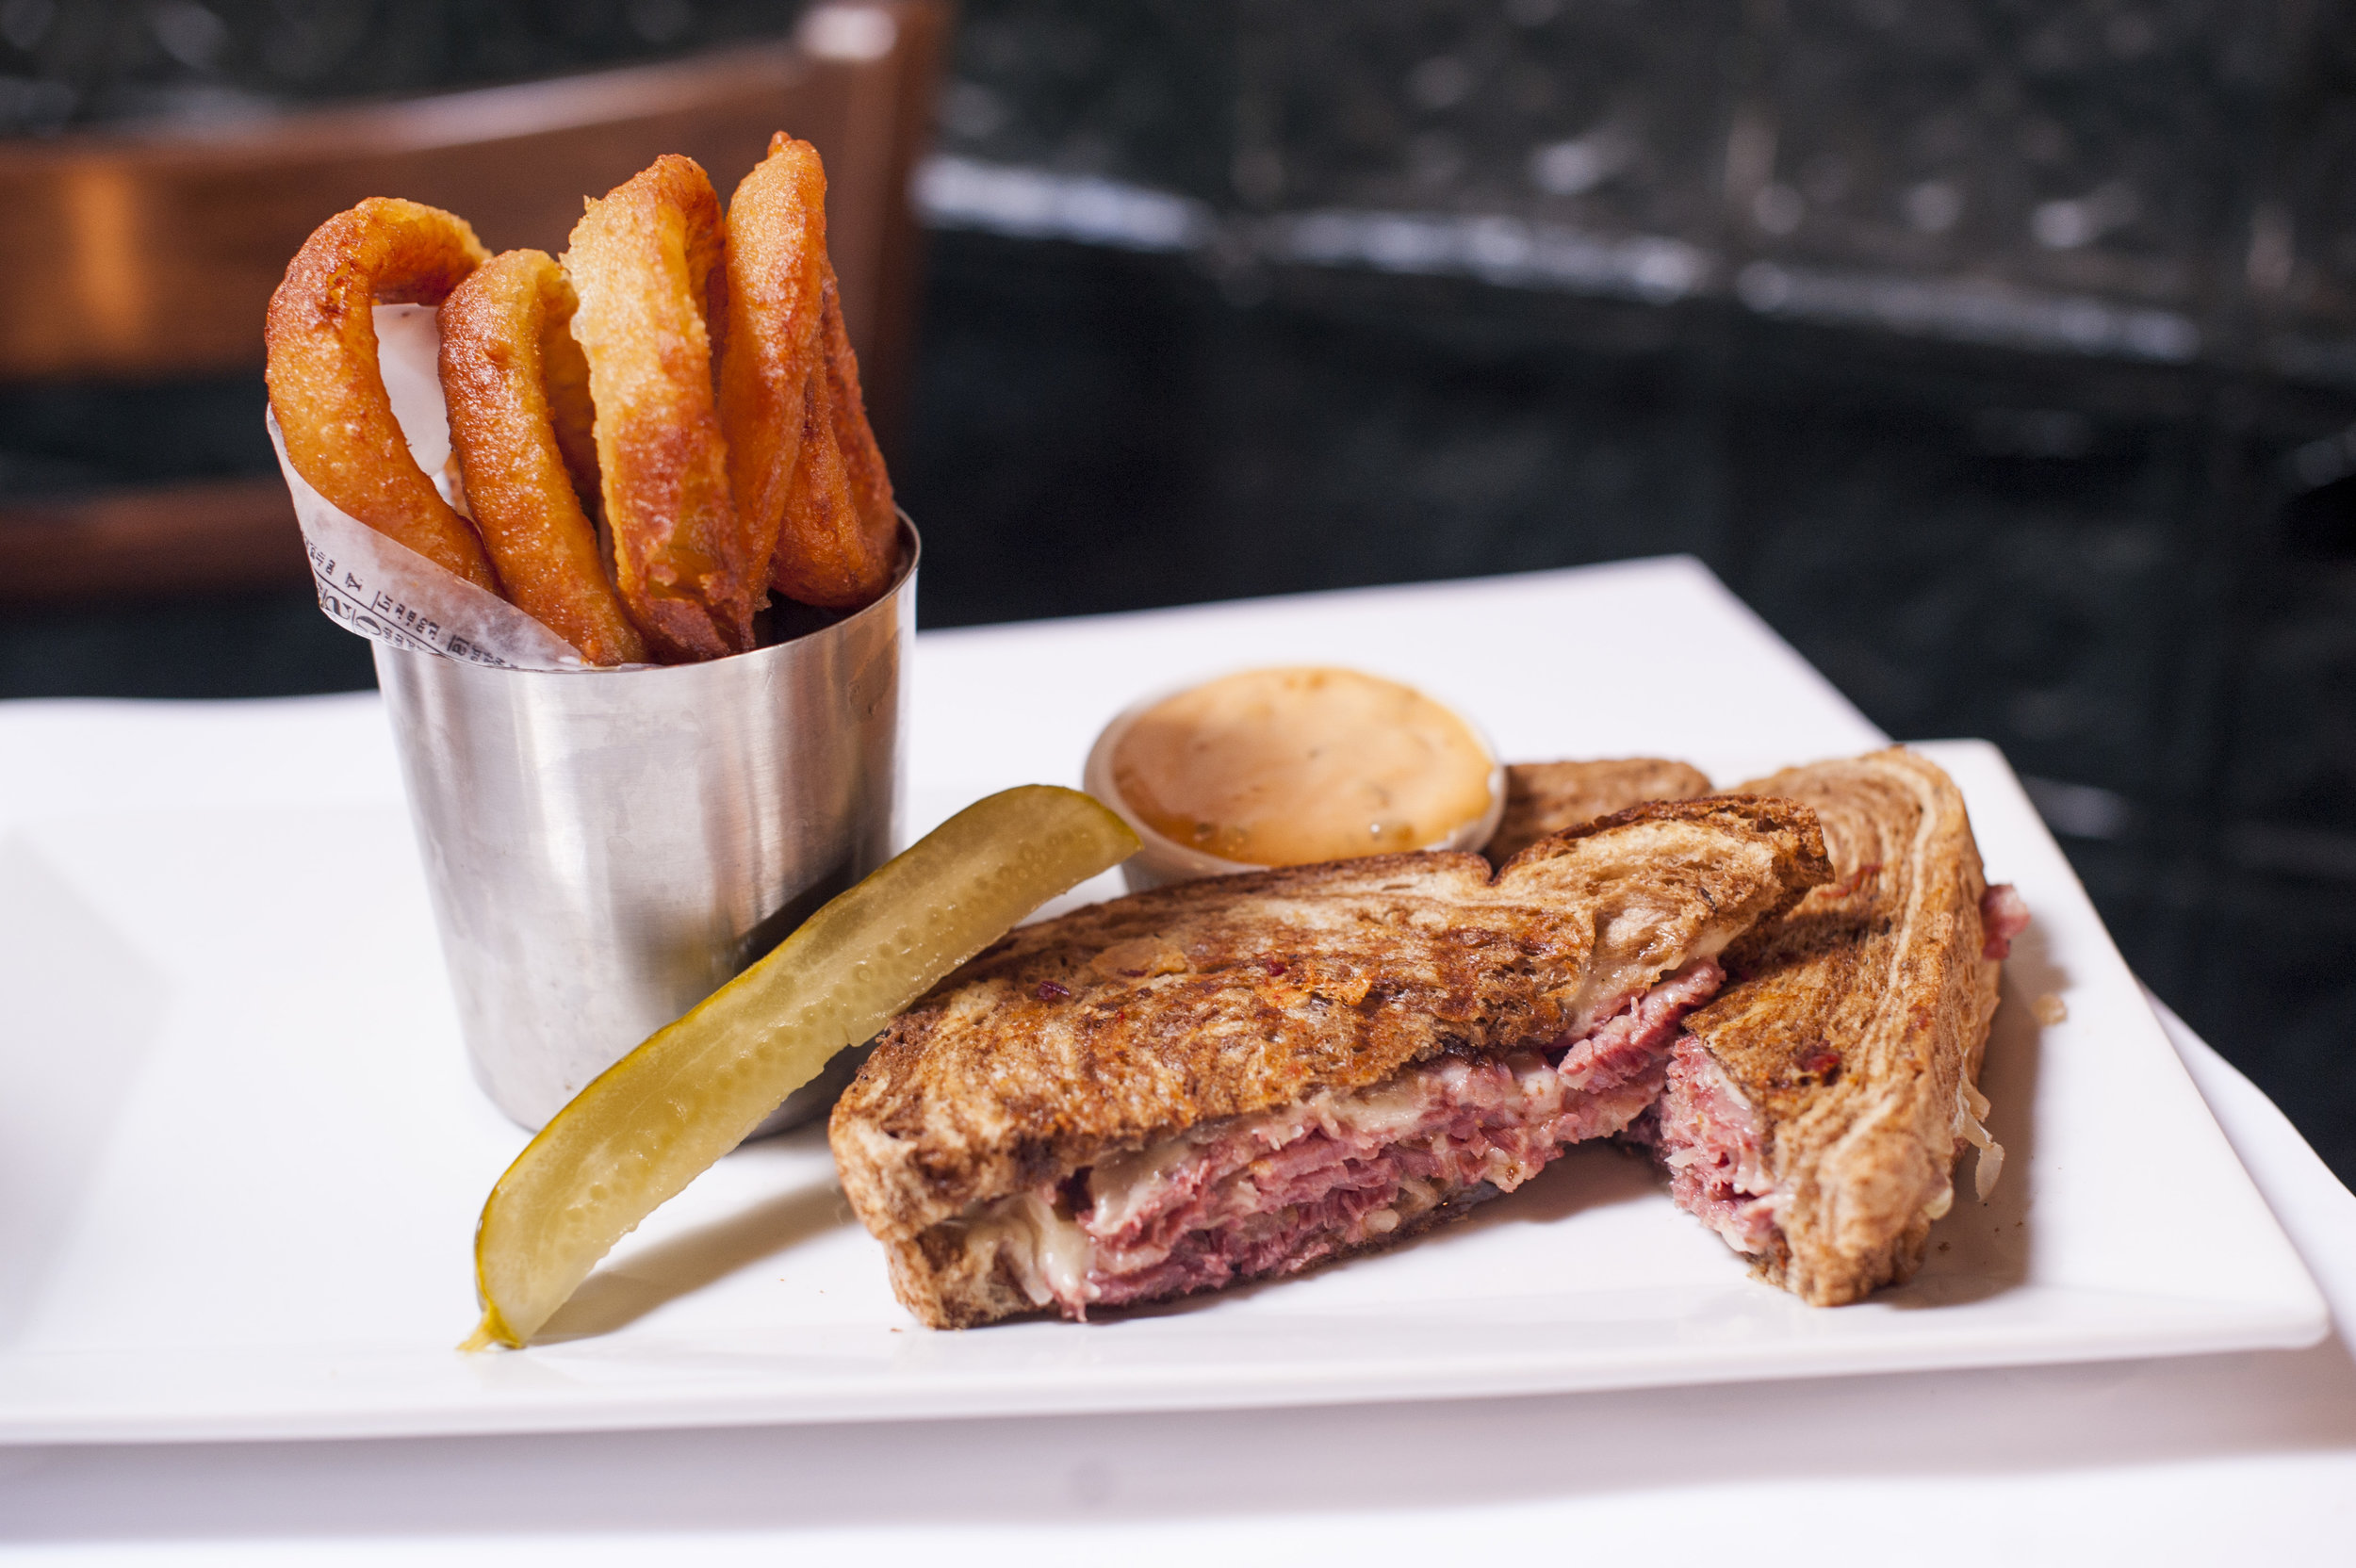 The Corned Beef Reuben delivers a complex blend of tastes that combine tangy, savory and sweet undertones, wrapped together in a marbled rye